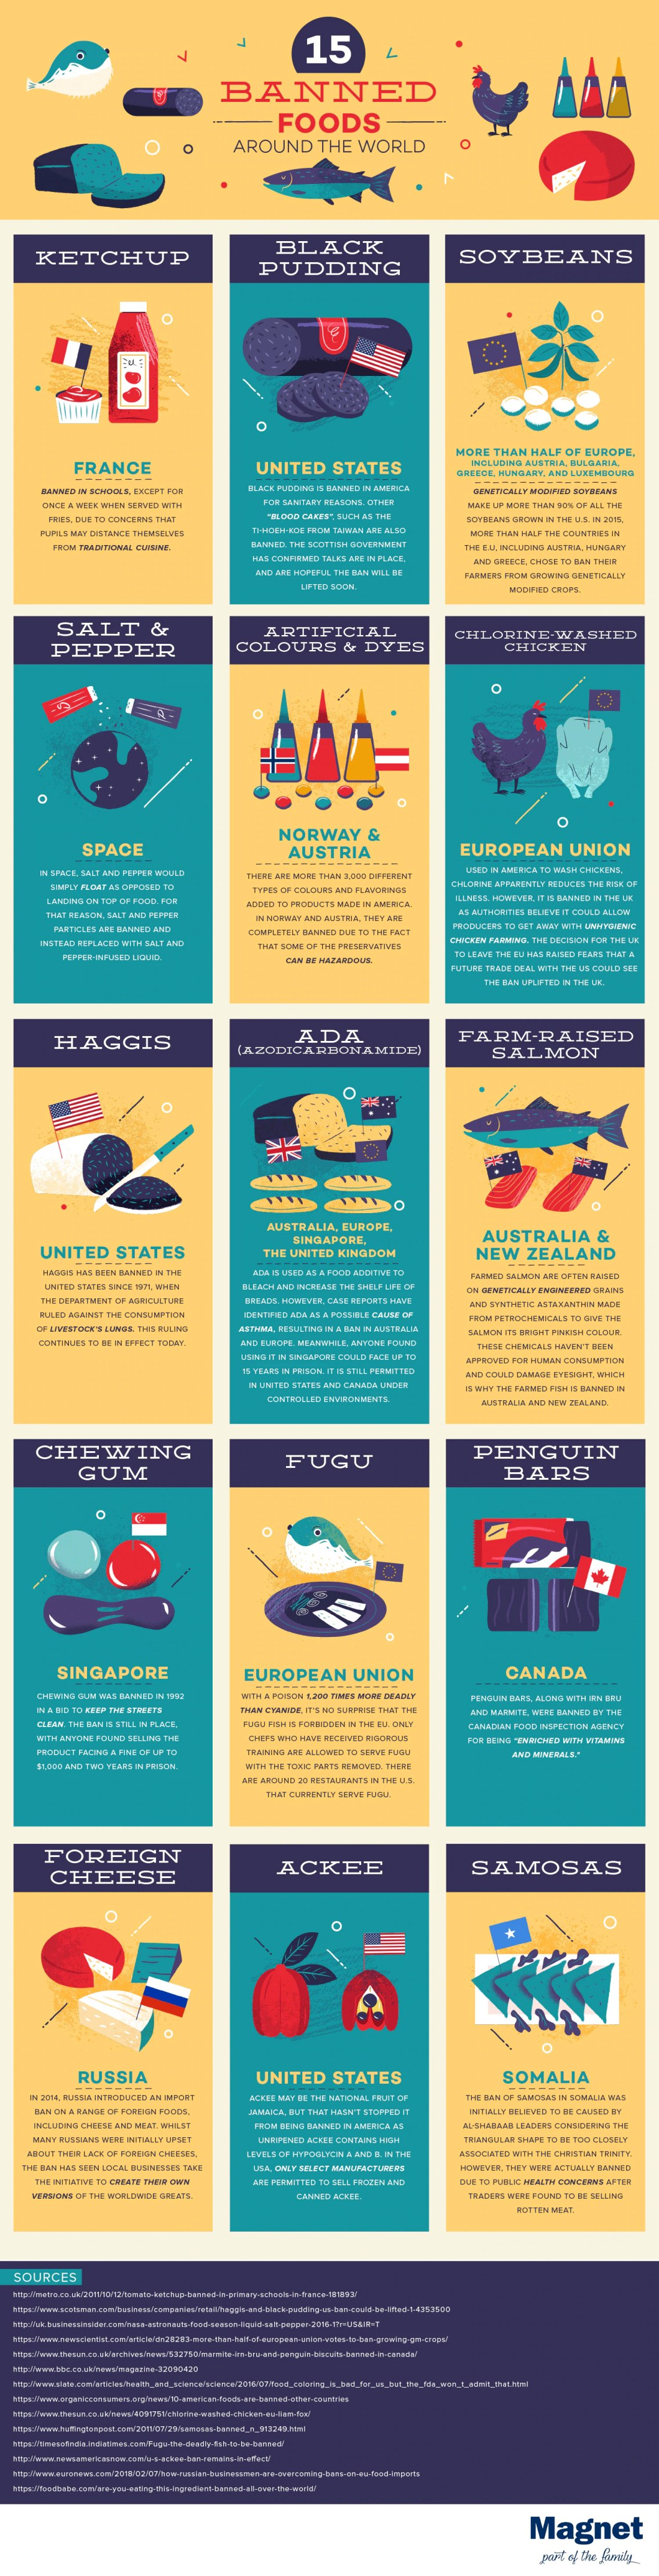 Eat This, Don't Eat That: 15 Banned Foods Around the World - Infographic